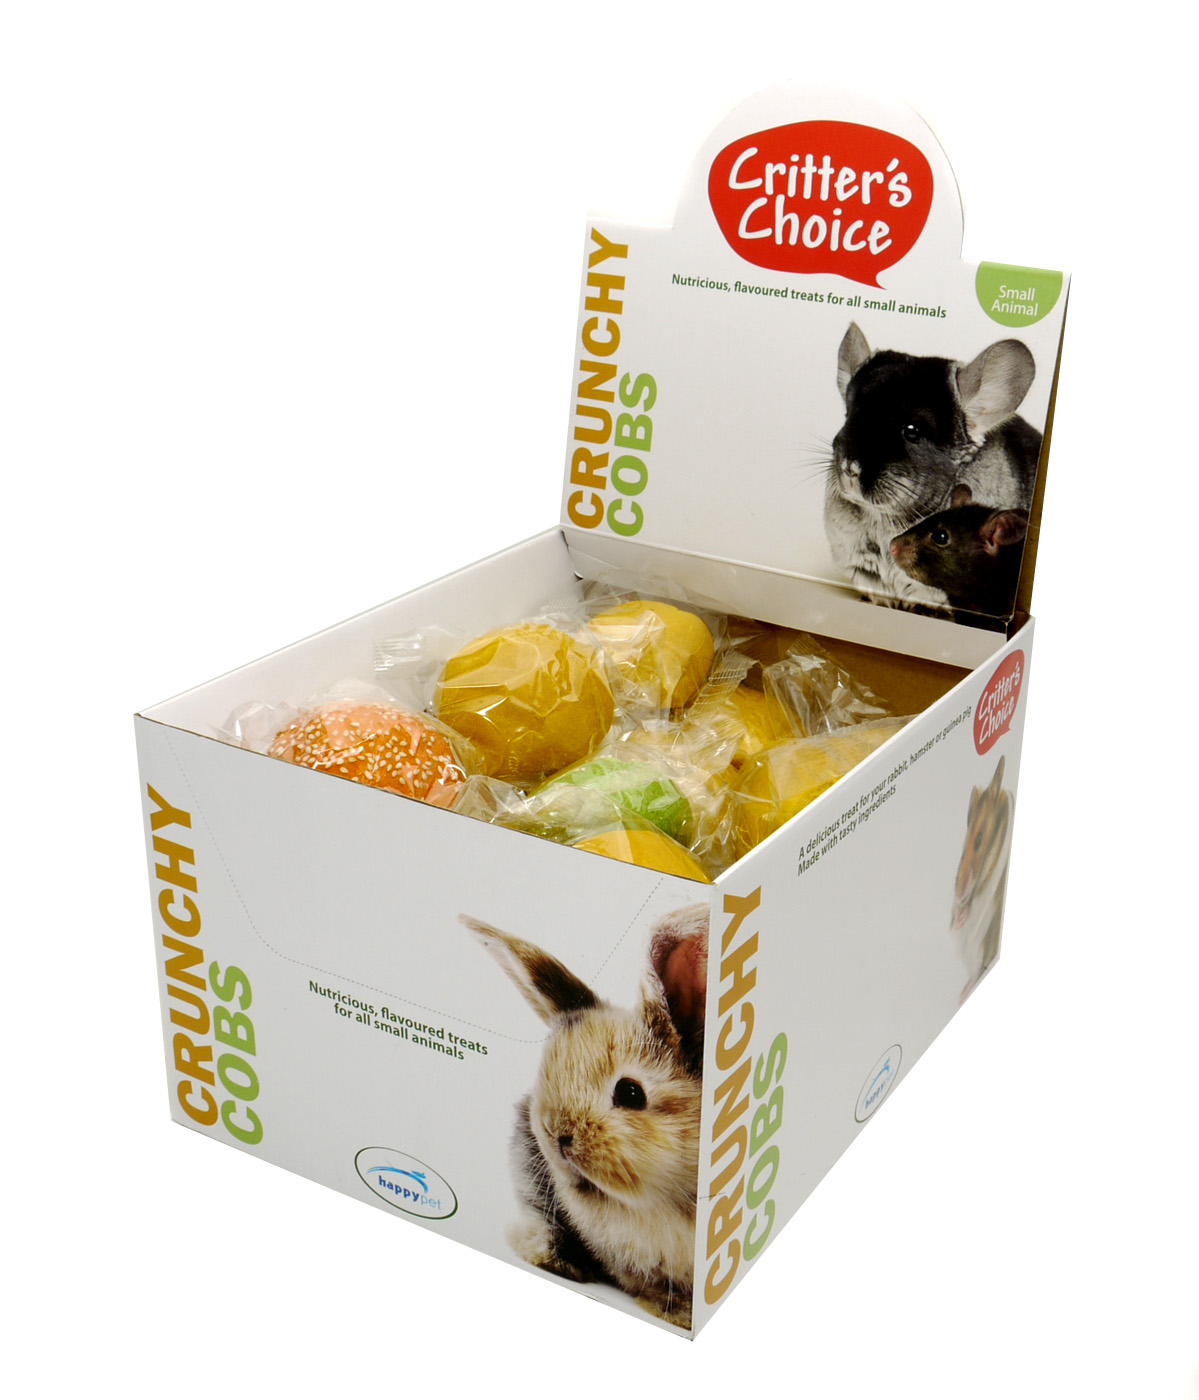 Critter's Choice Assorted Crunchy Cobs Small Animal Treats